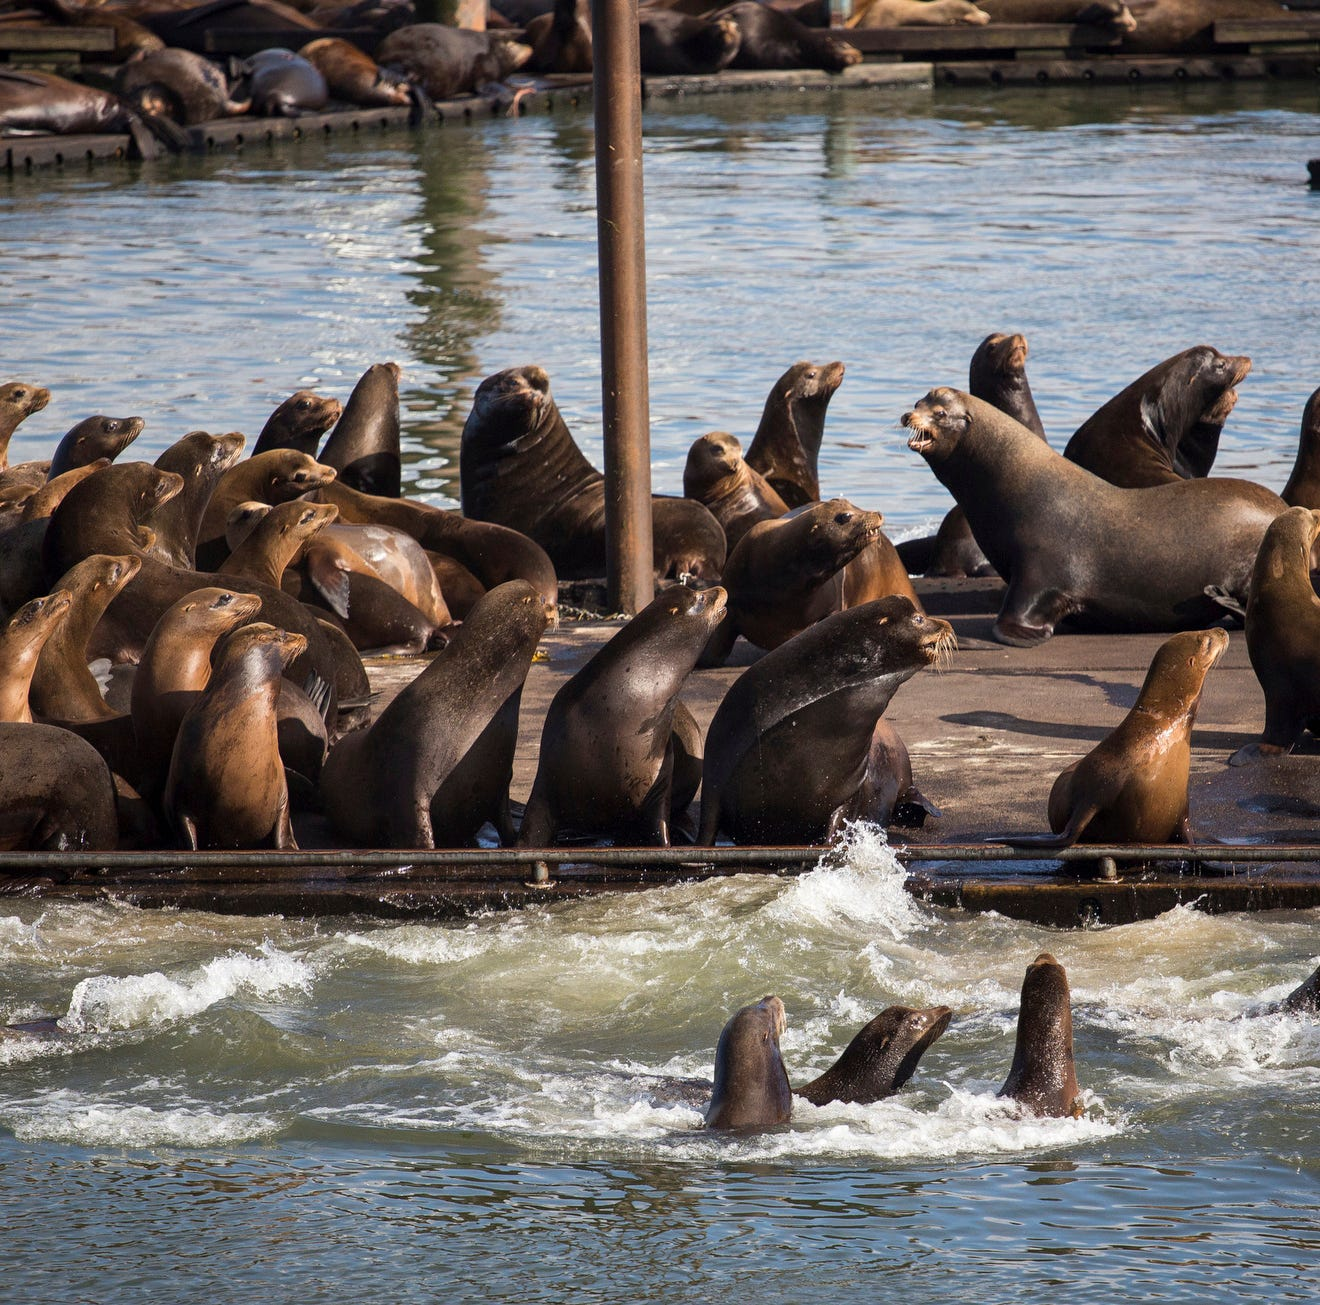 Sea lion population growth along the West Coast causing problems at marinas and ports